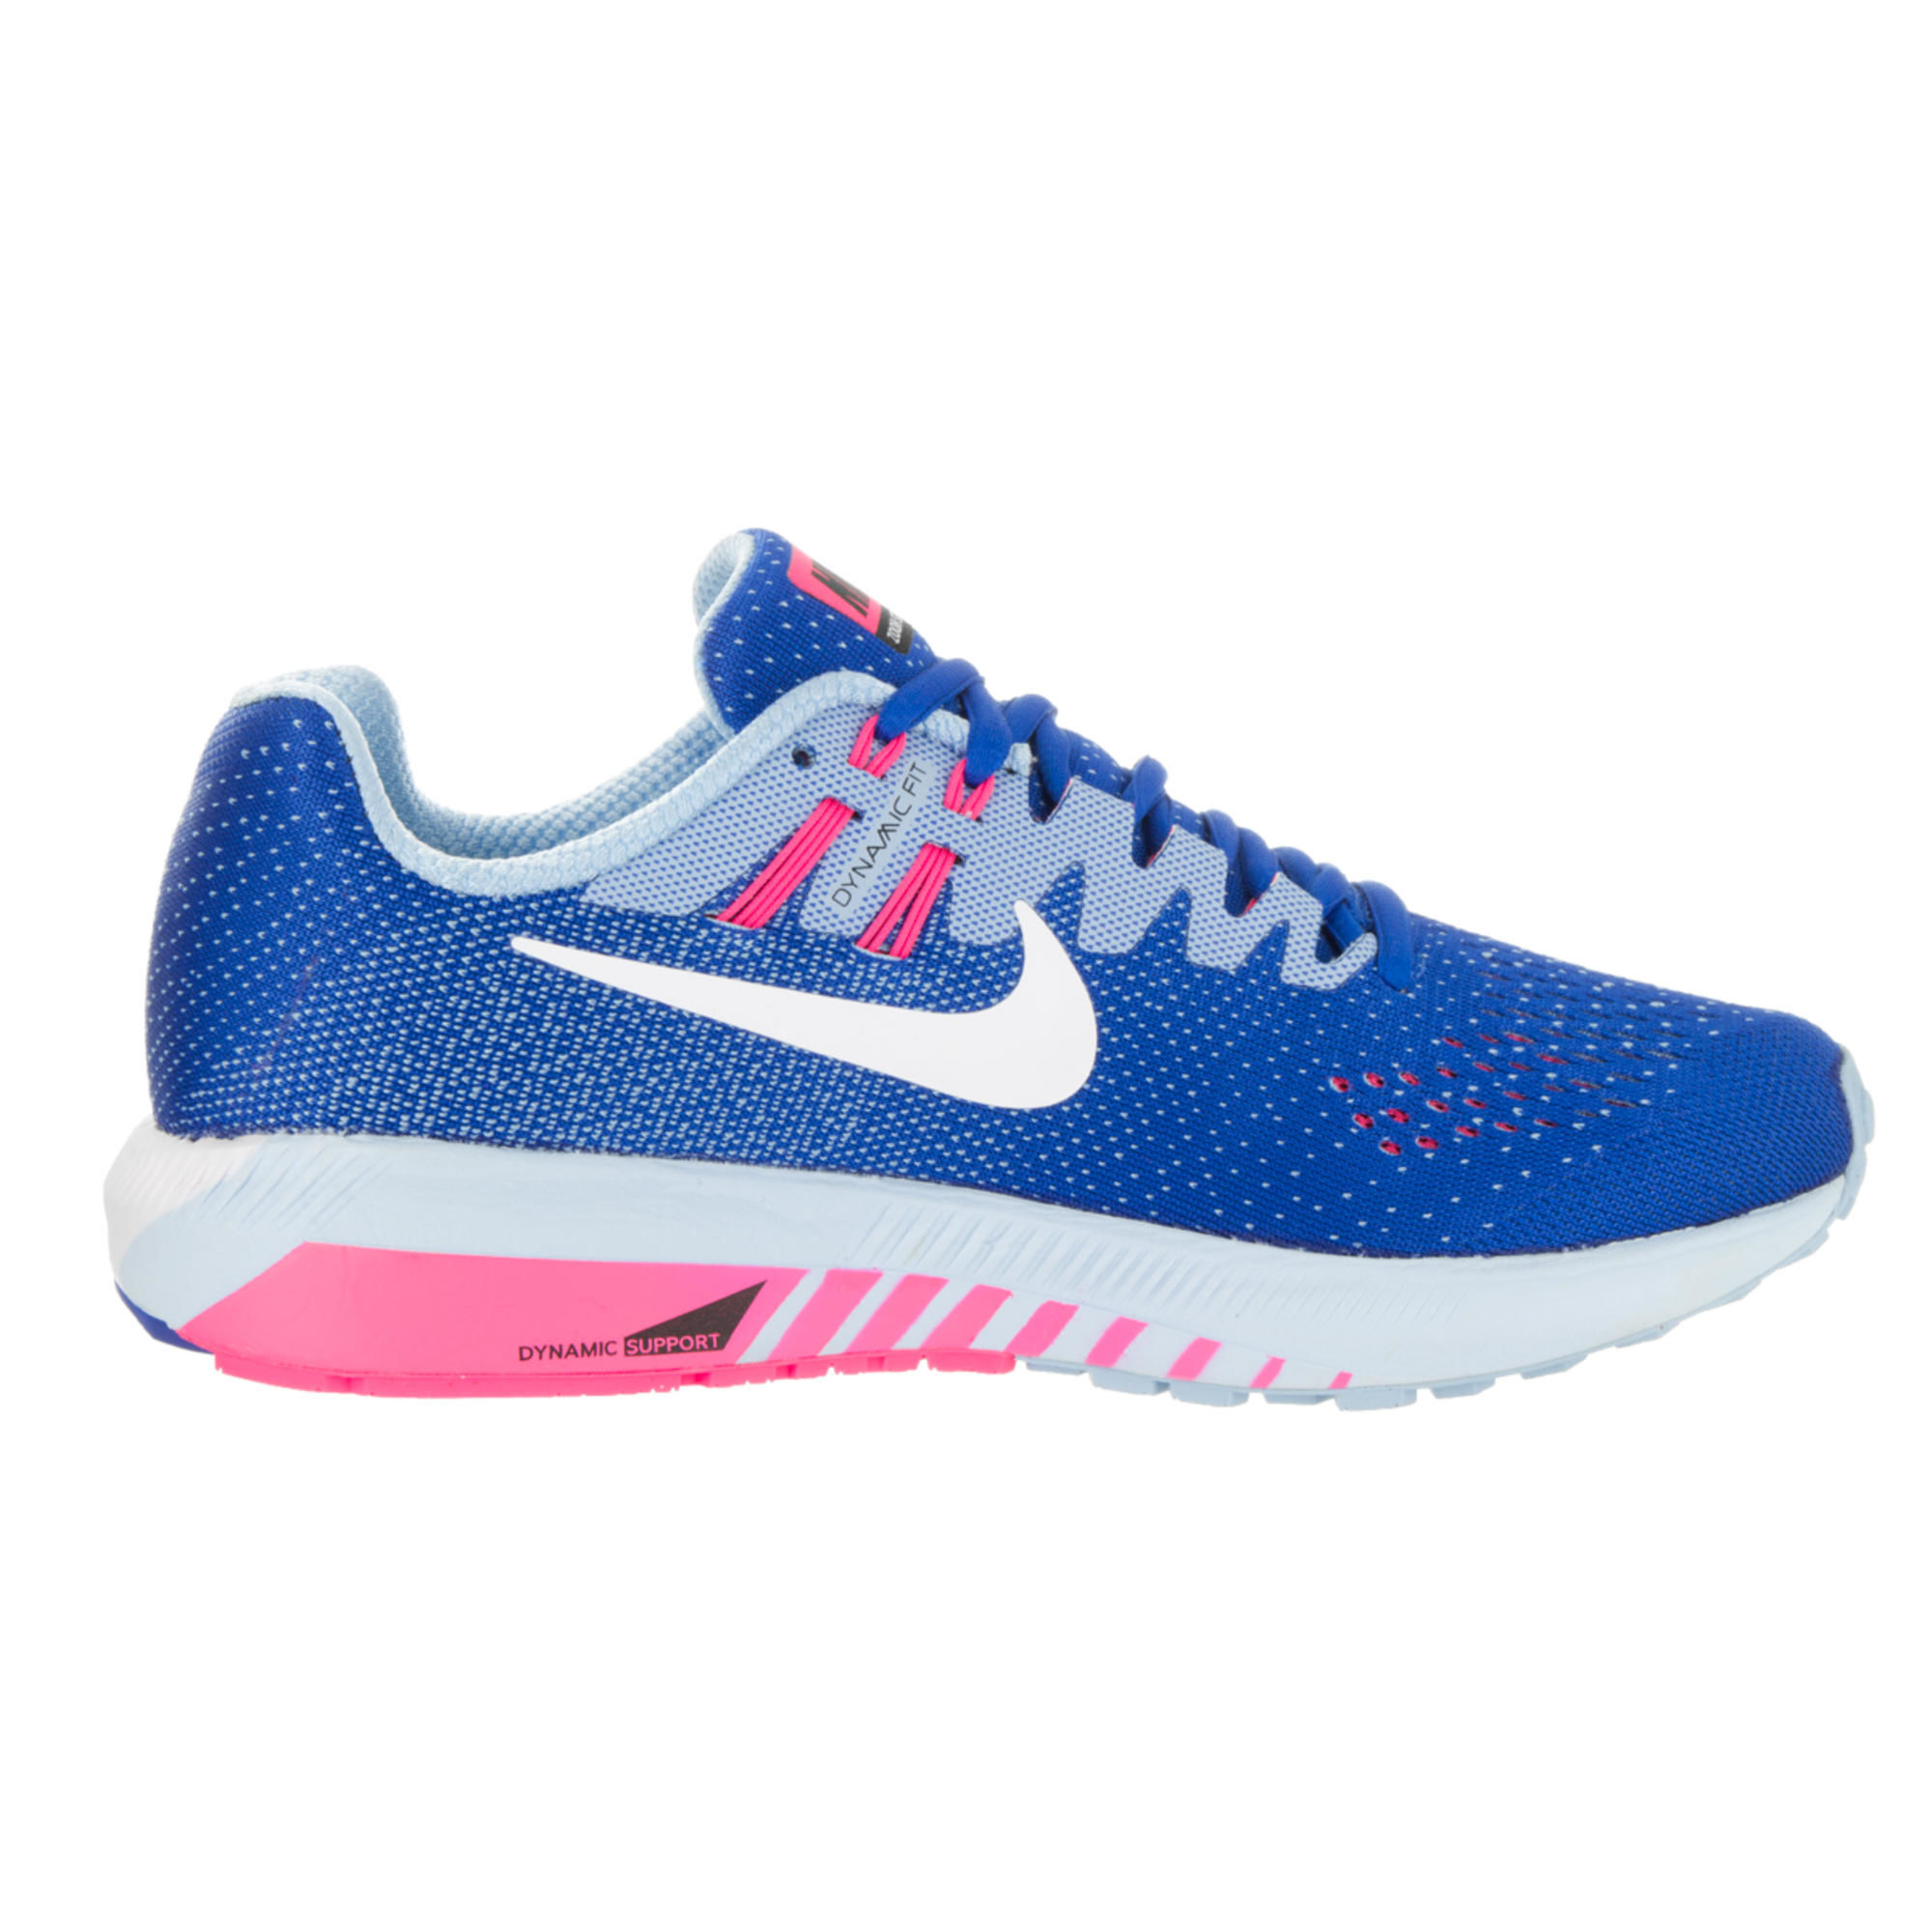 Nike Lady Air Zoom Structure 20 in Blau